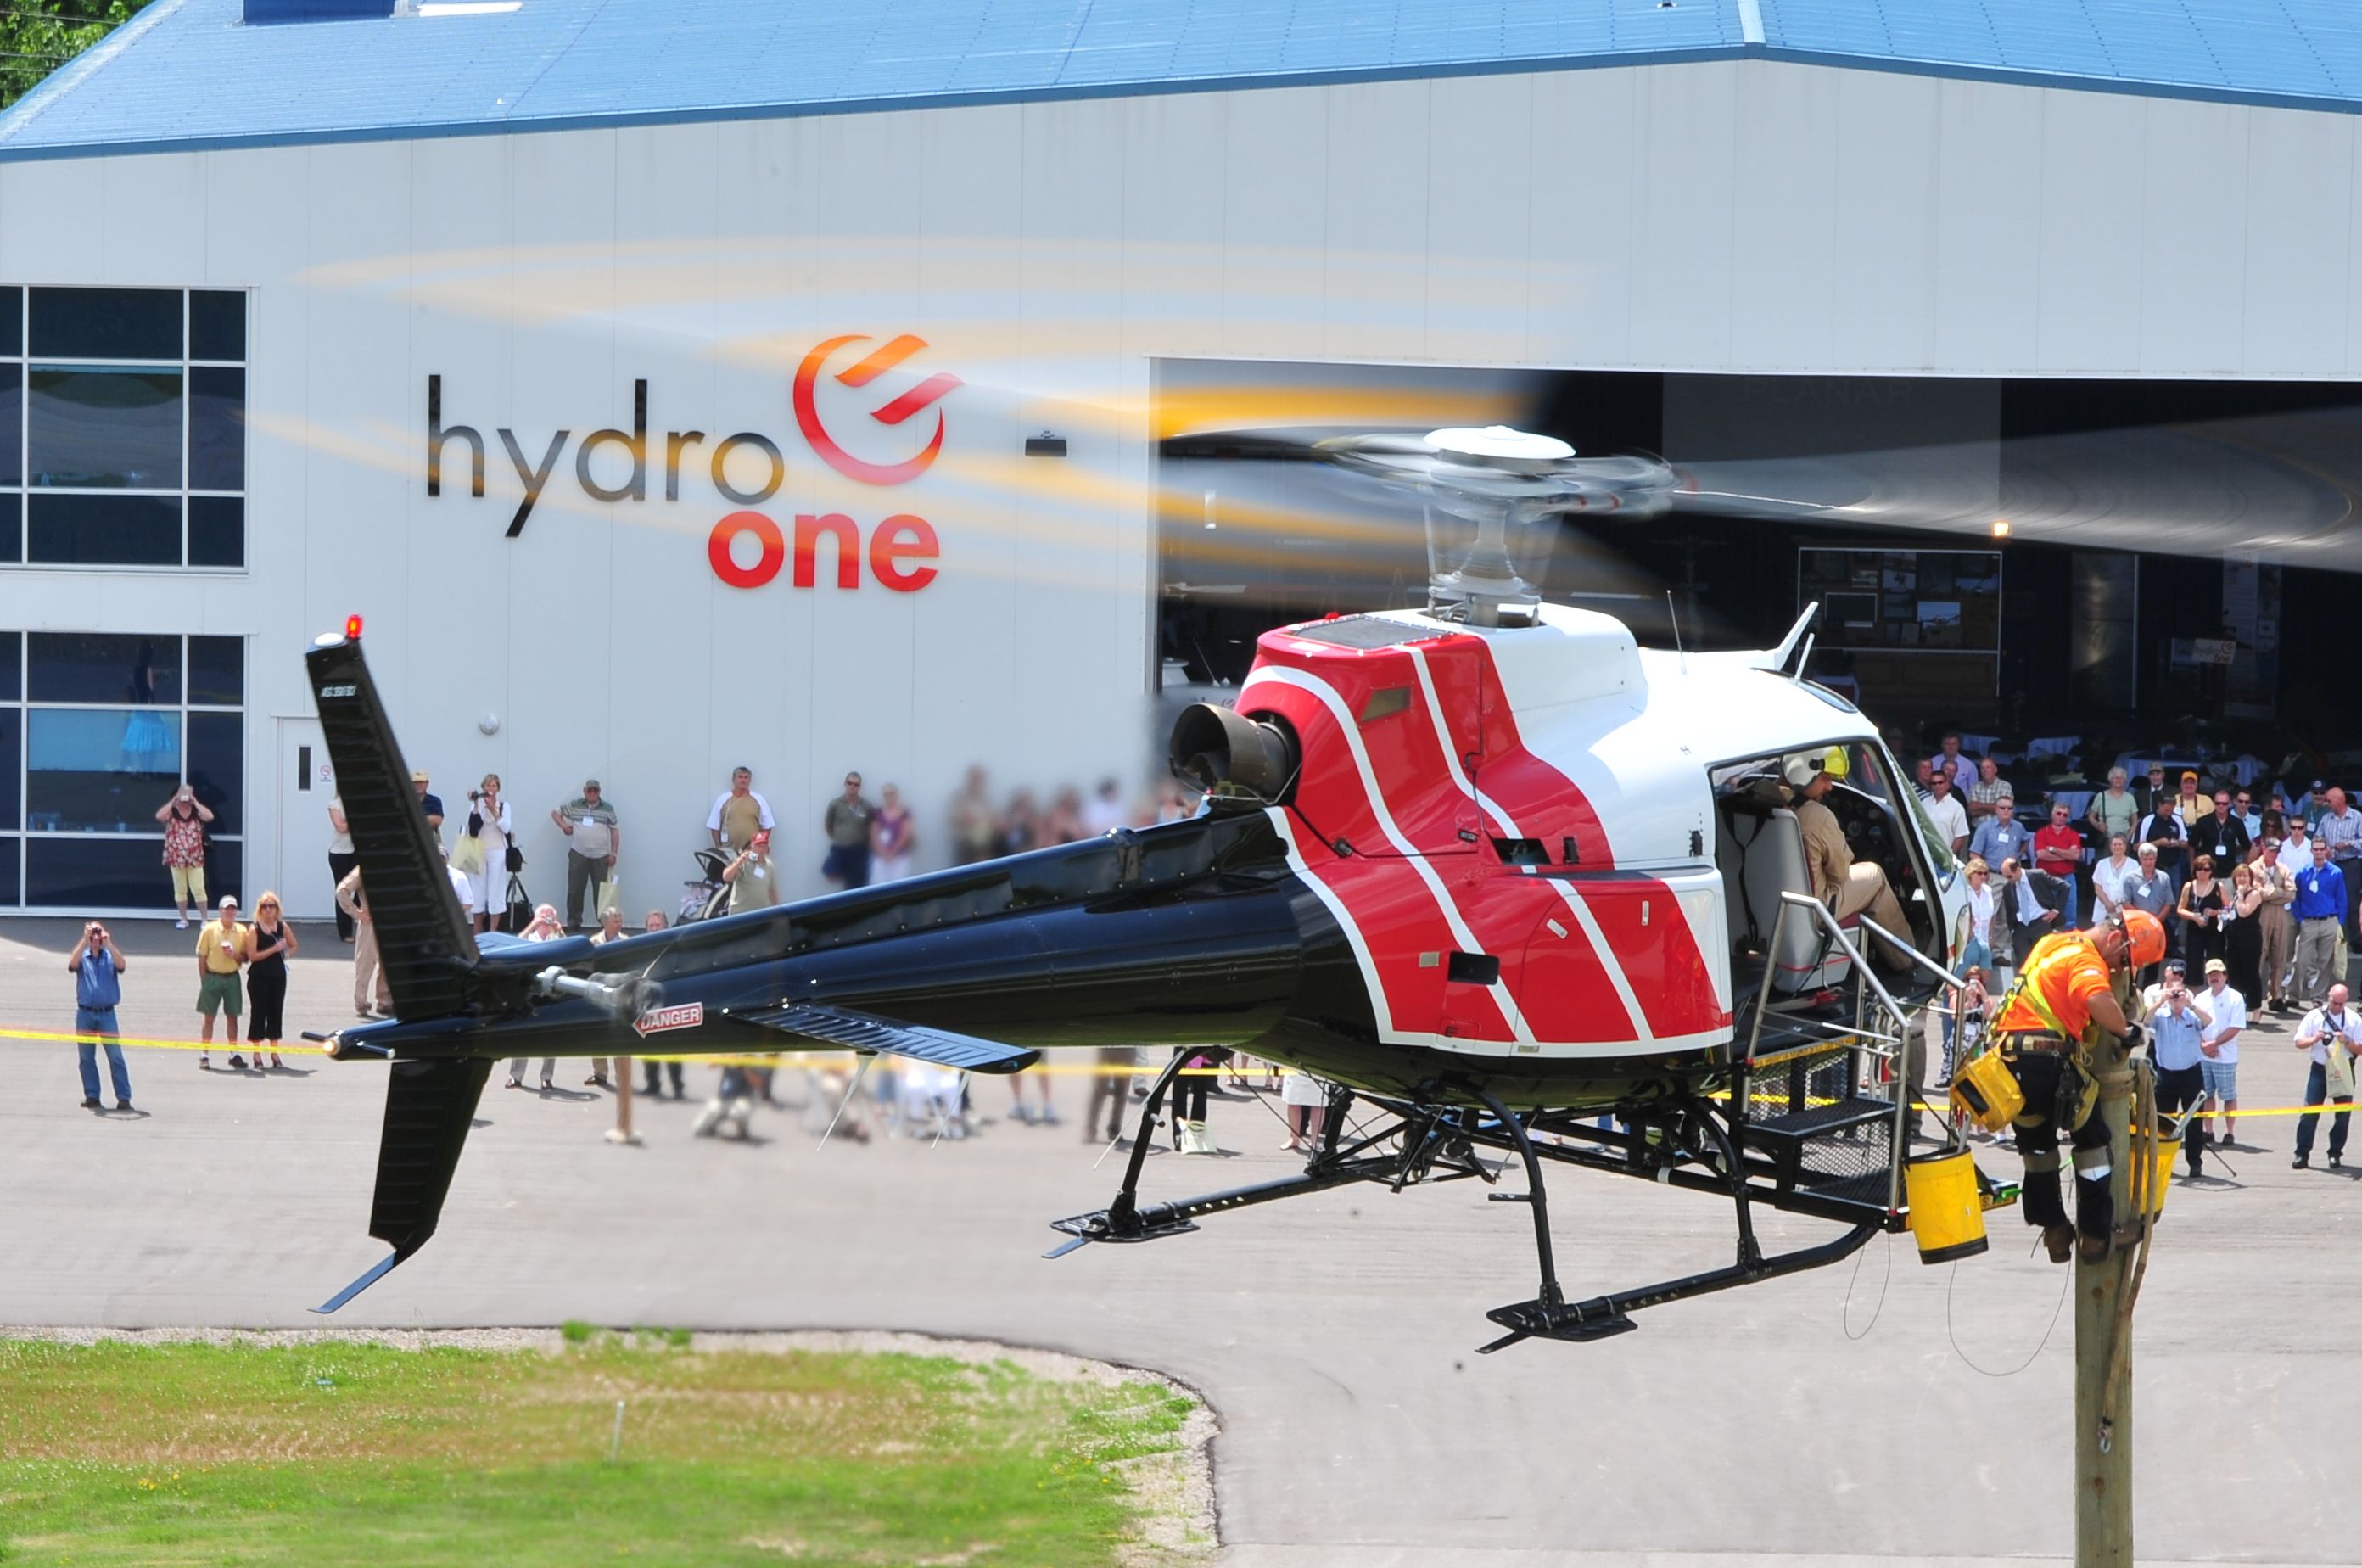 A Hydro One crew demonstrates the use of an external AirStairs platform.